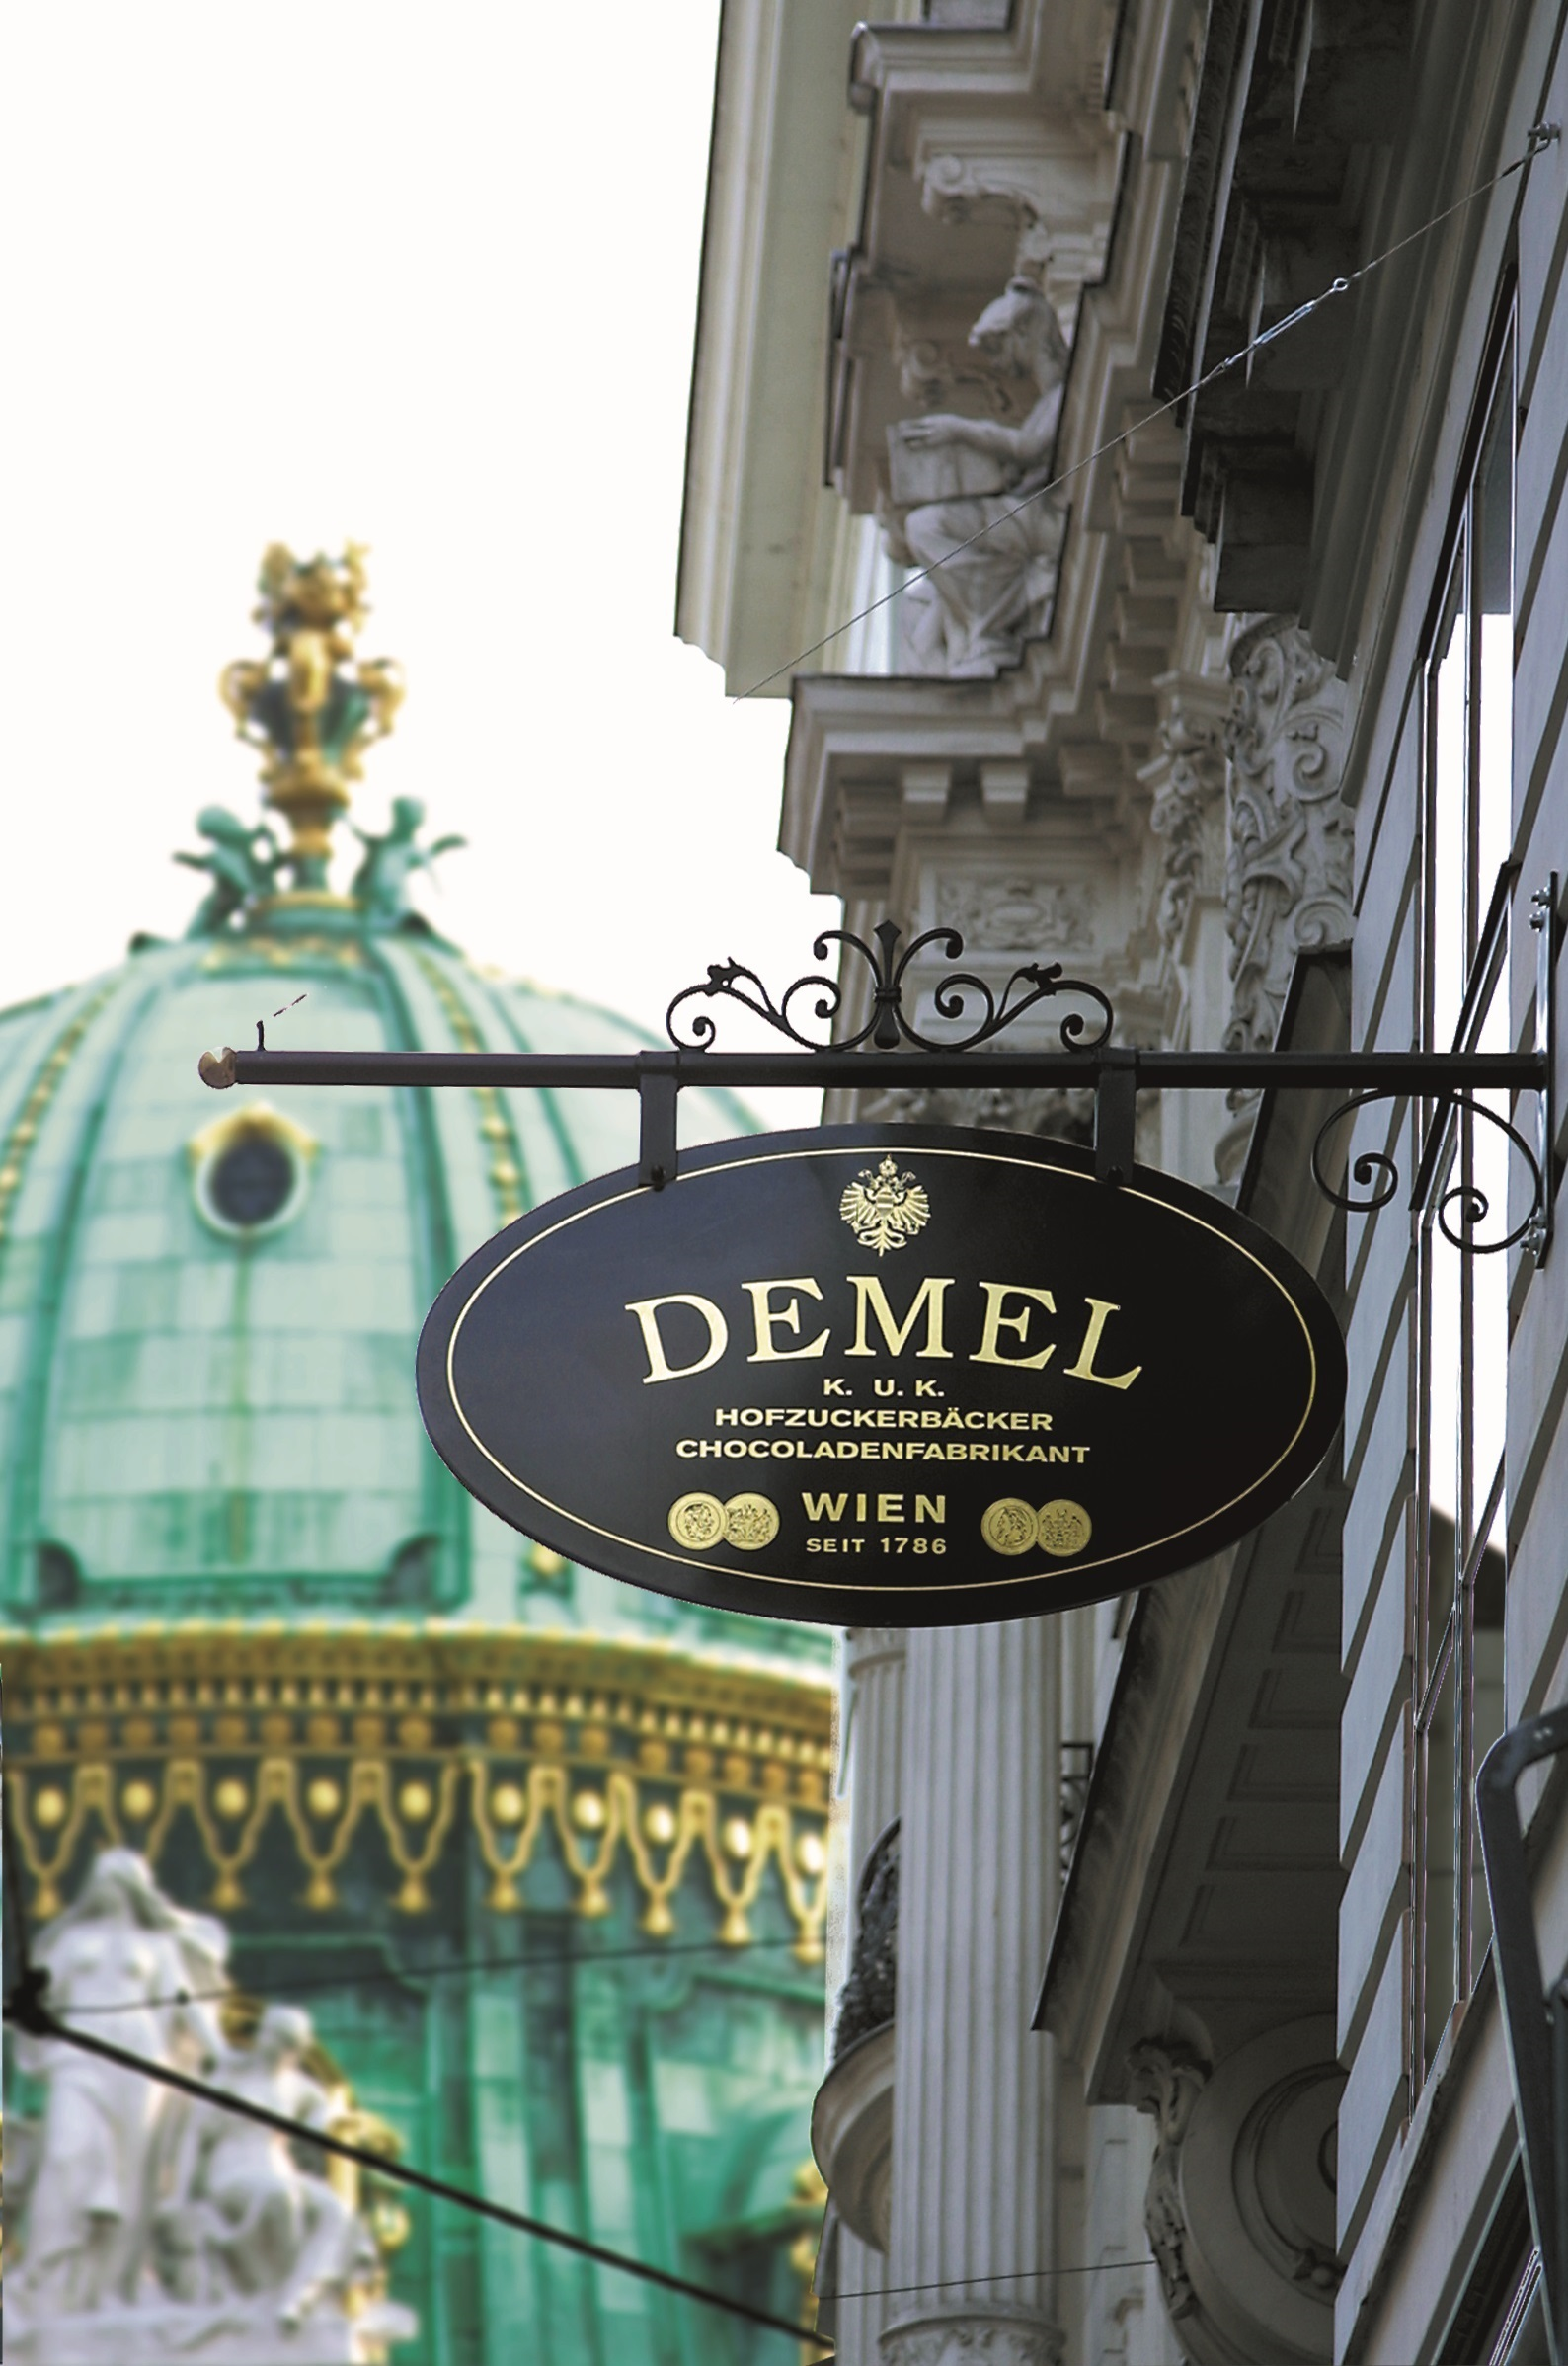 DEMEL-schild.tif_13697_original_FINAL.jpg